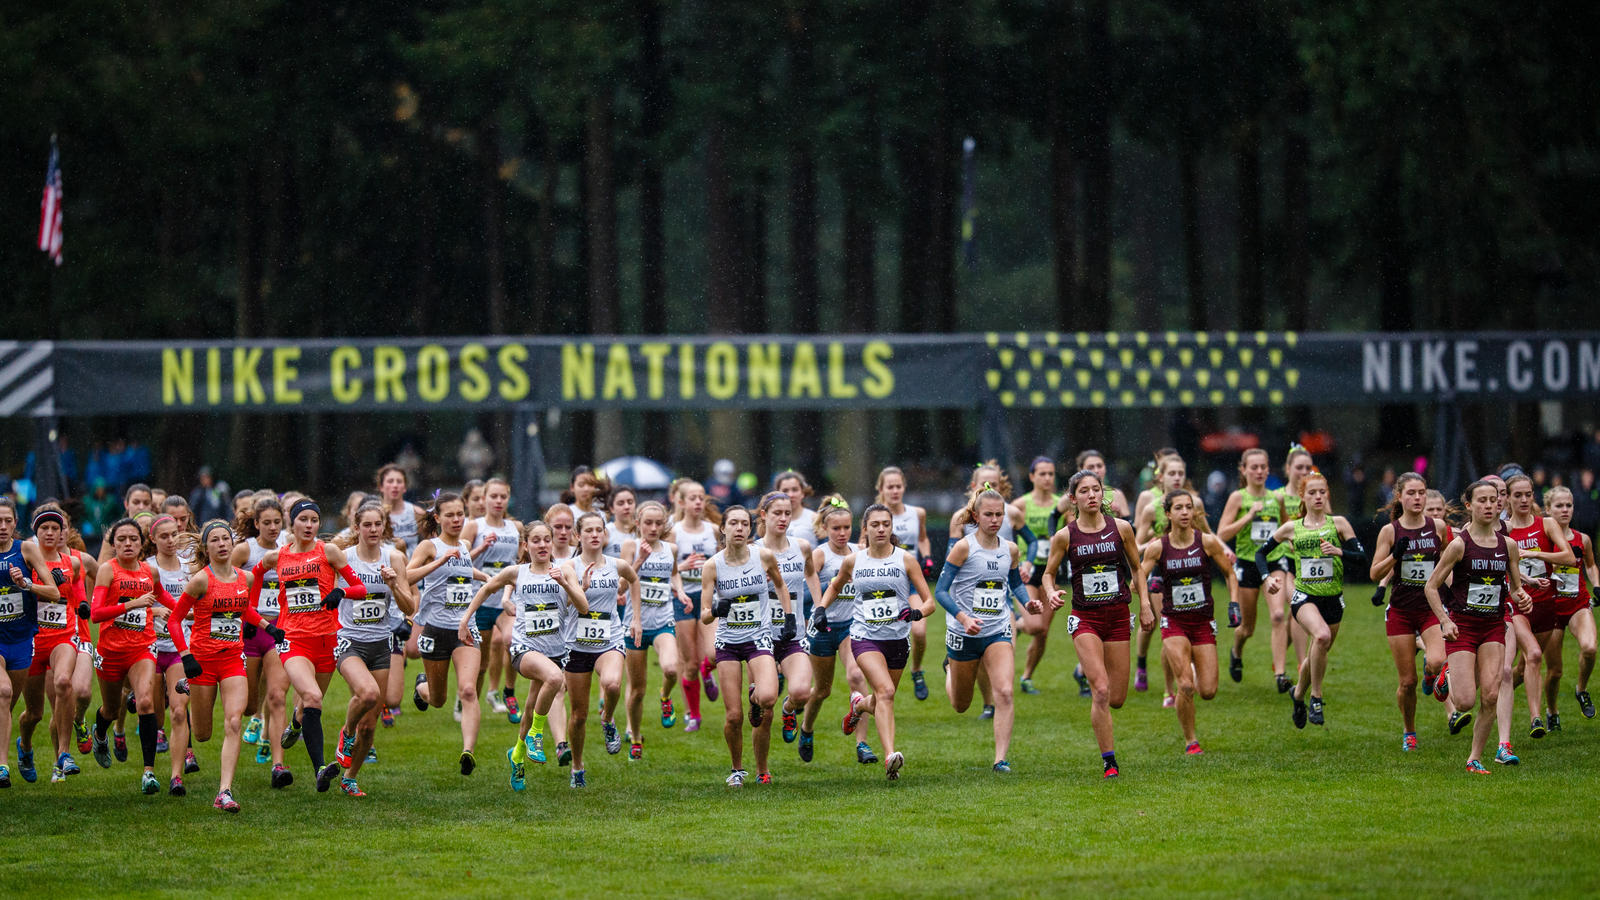 First Day Of School New York 2015 Welcome To Nycgov City Of New York Top High School Talent On Display 12th Annual Nike Cross